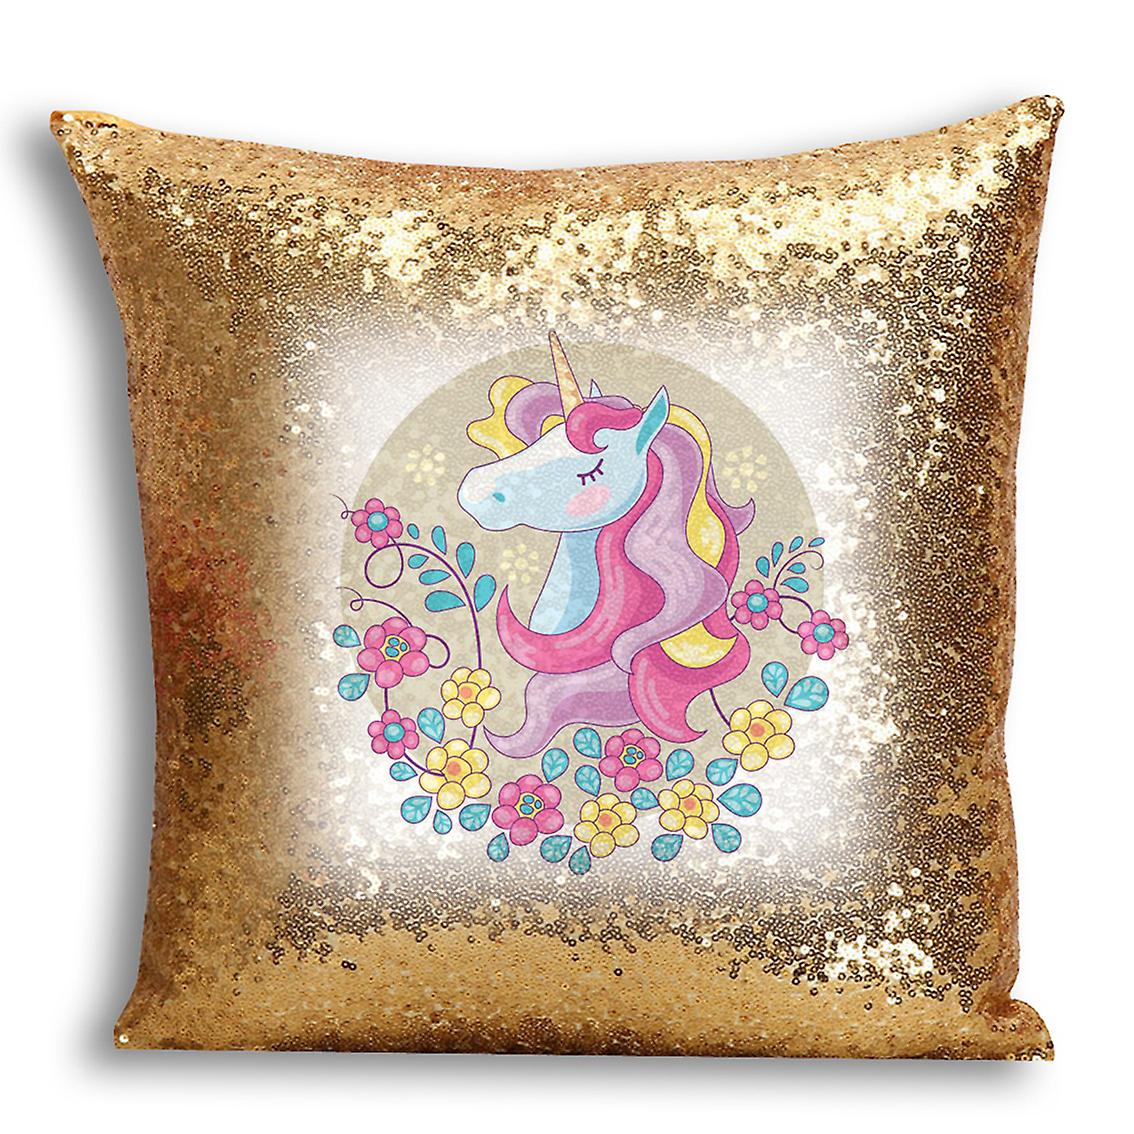 5 For Home Decor Printed Gold Sequin CushionPillow With Inserted tronixsUnicorn I Cover Design MzpSUV